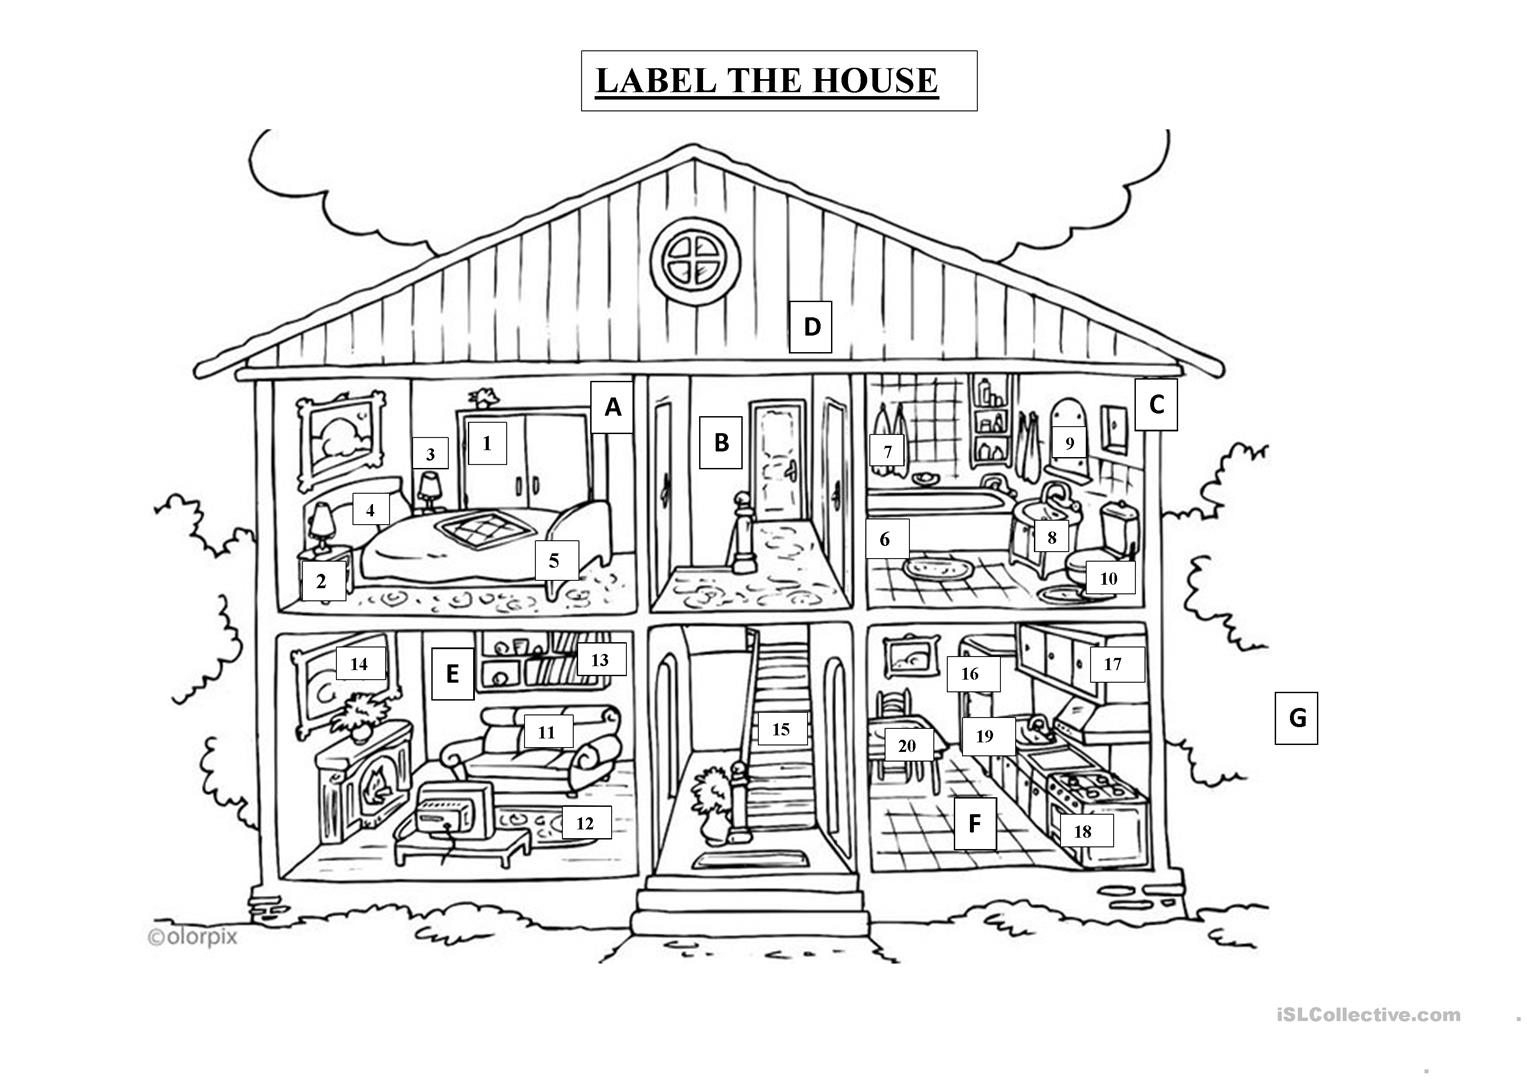 Home Objects Worksheet Label